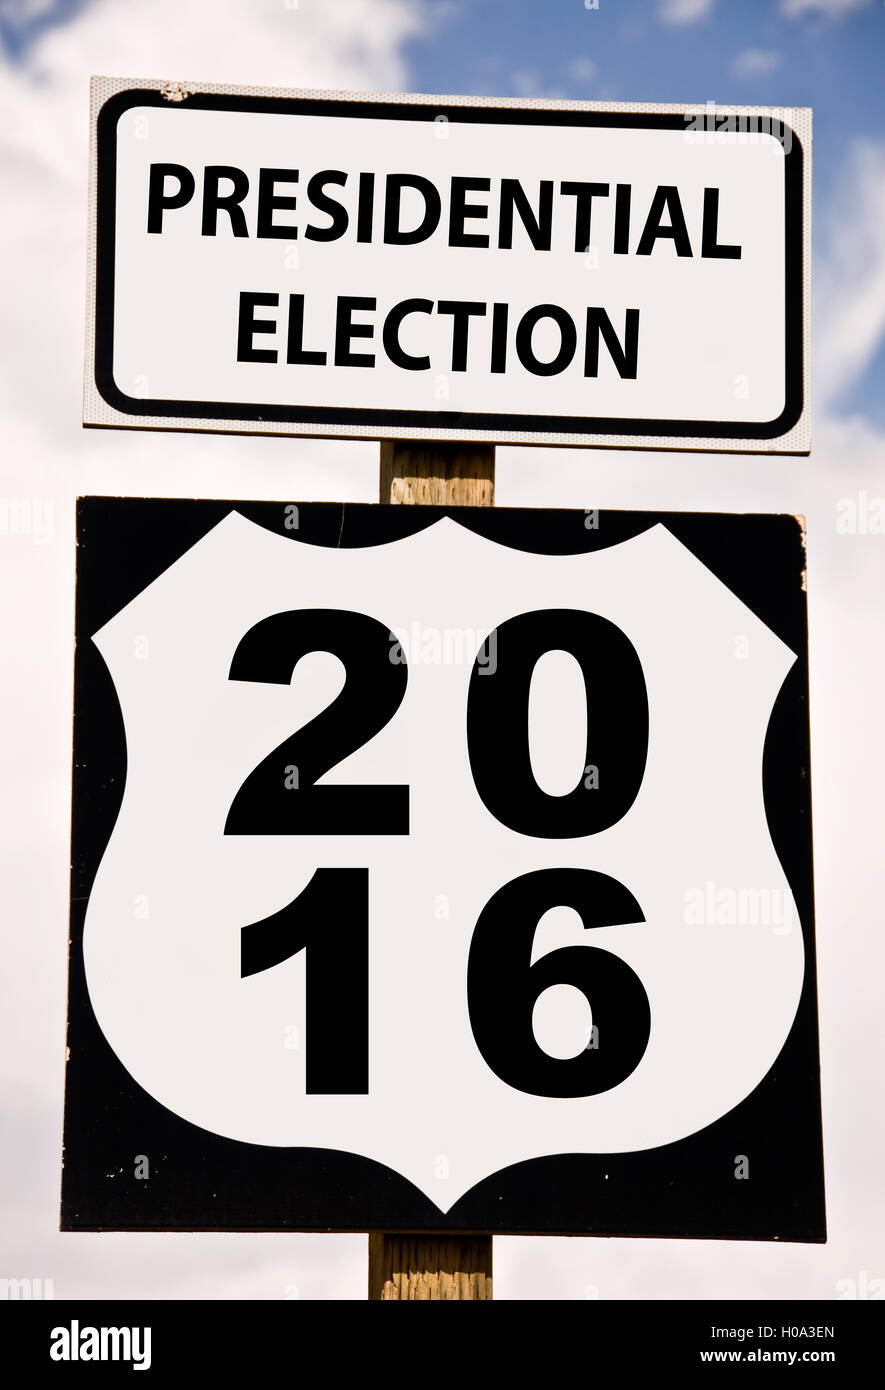 Presidential election 2016 written on american roadsign - Stock Image